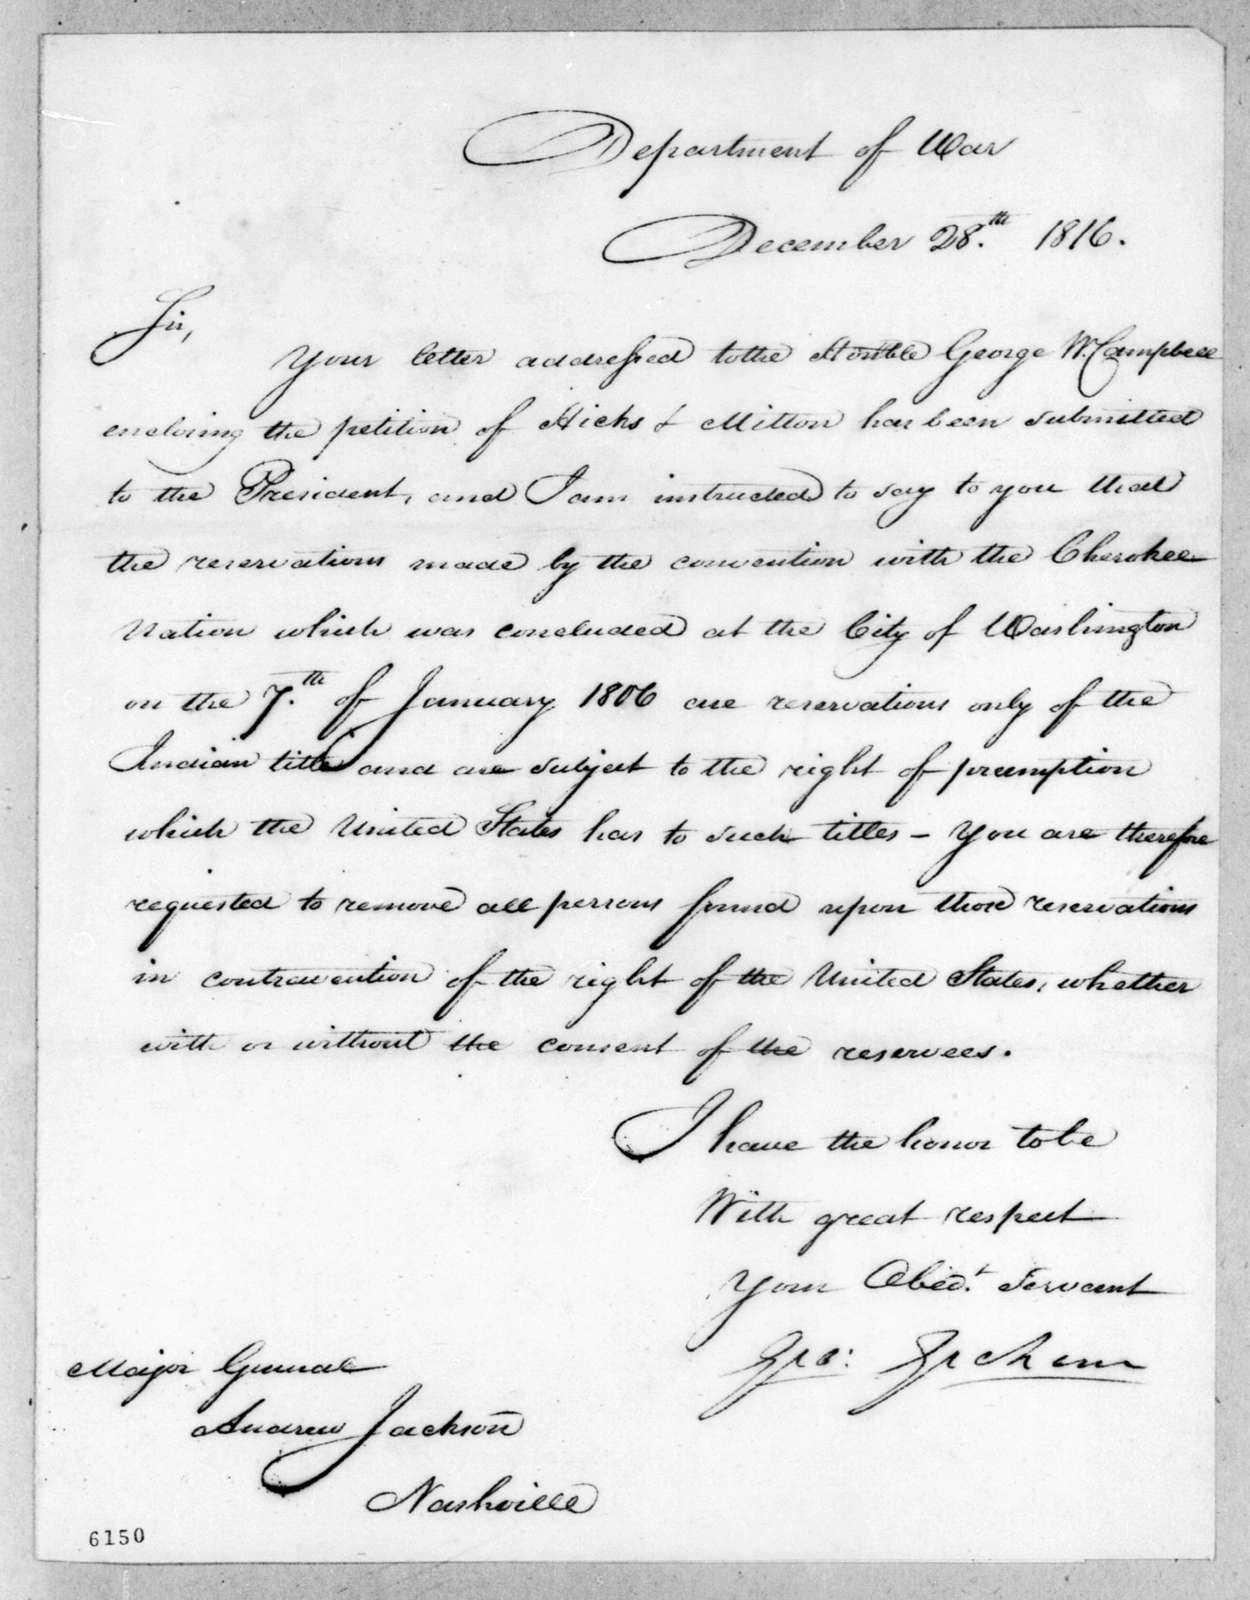 George Graham to Andrew Jackson, December 28, 1816